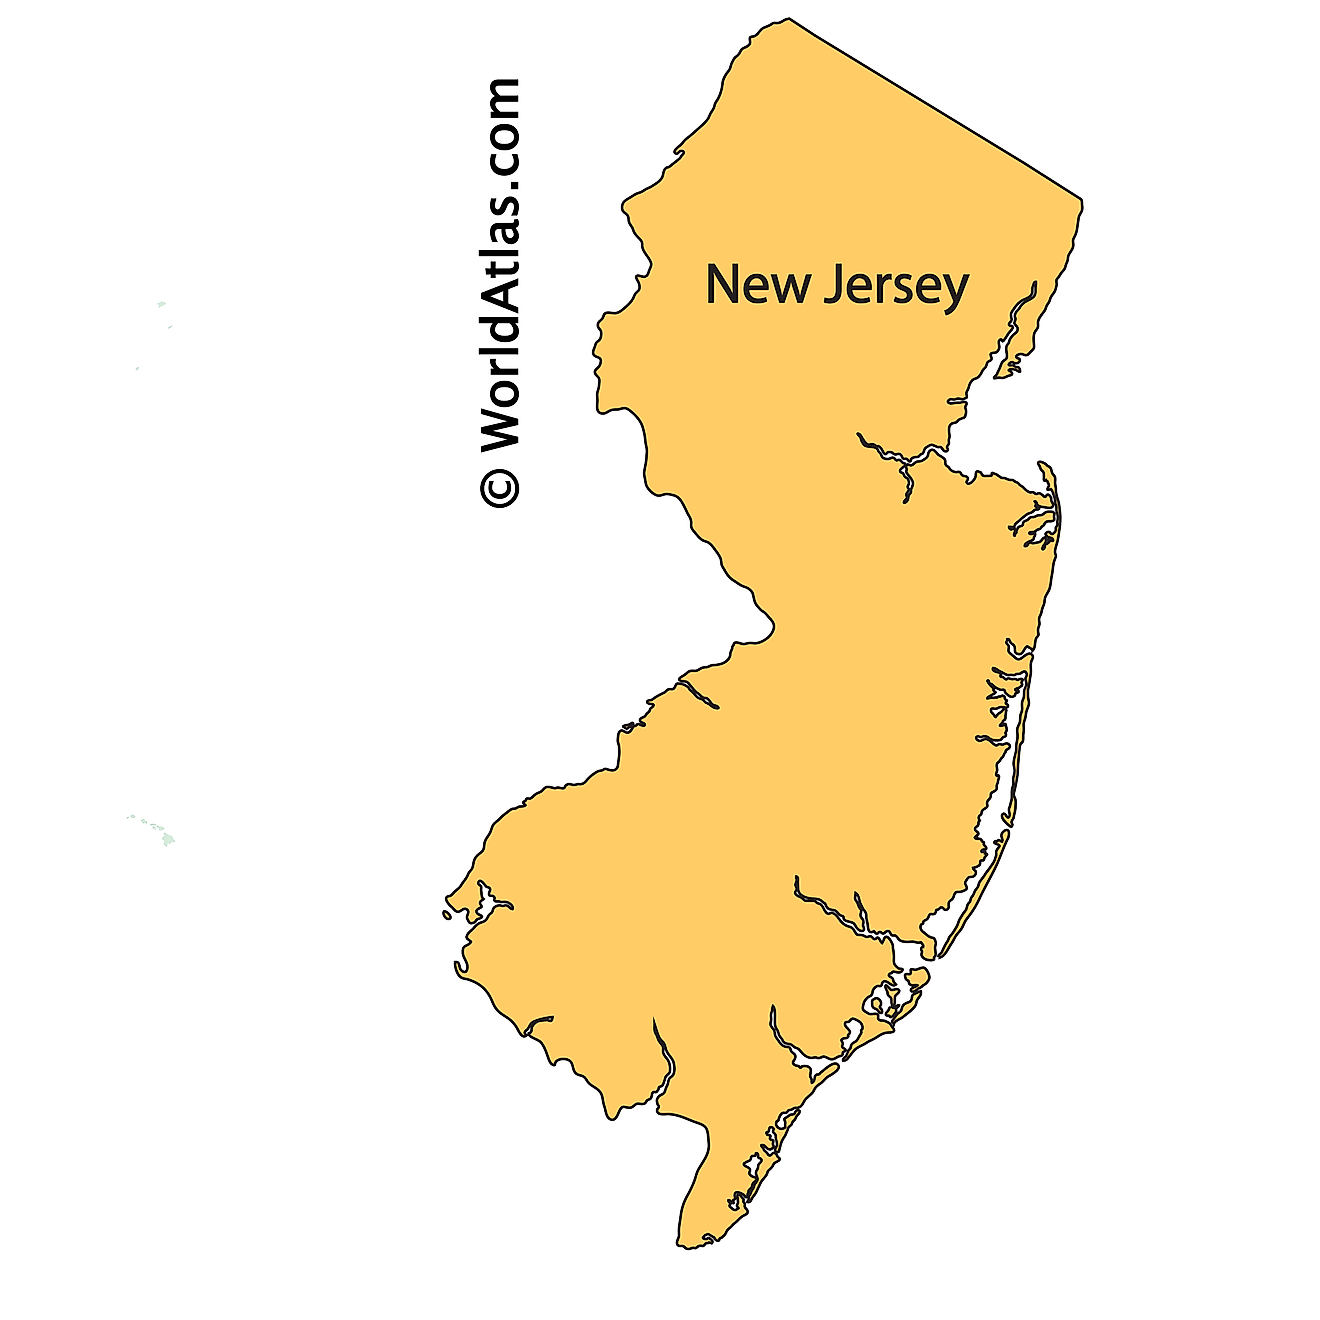 Outline Map of New Jersey